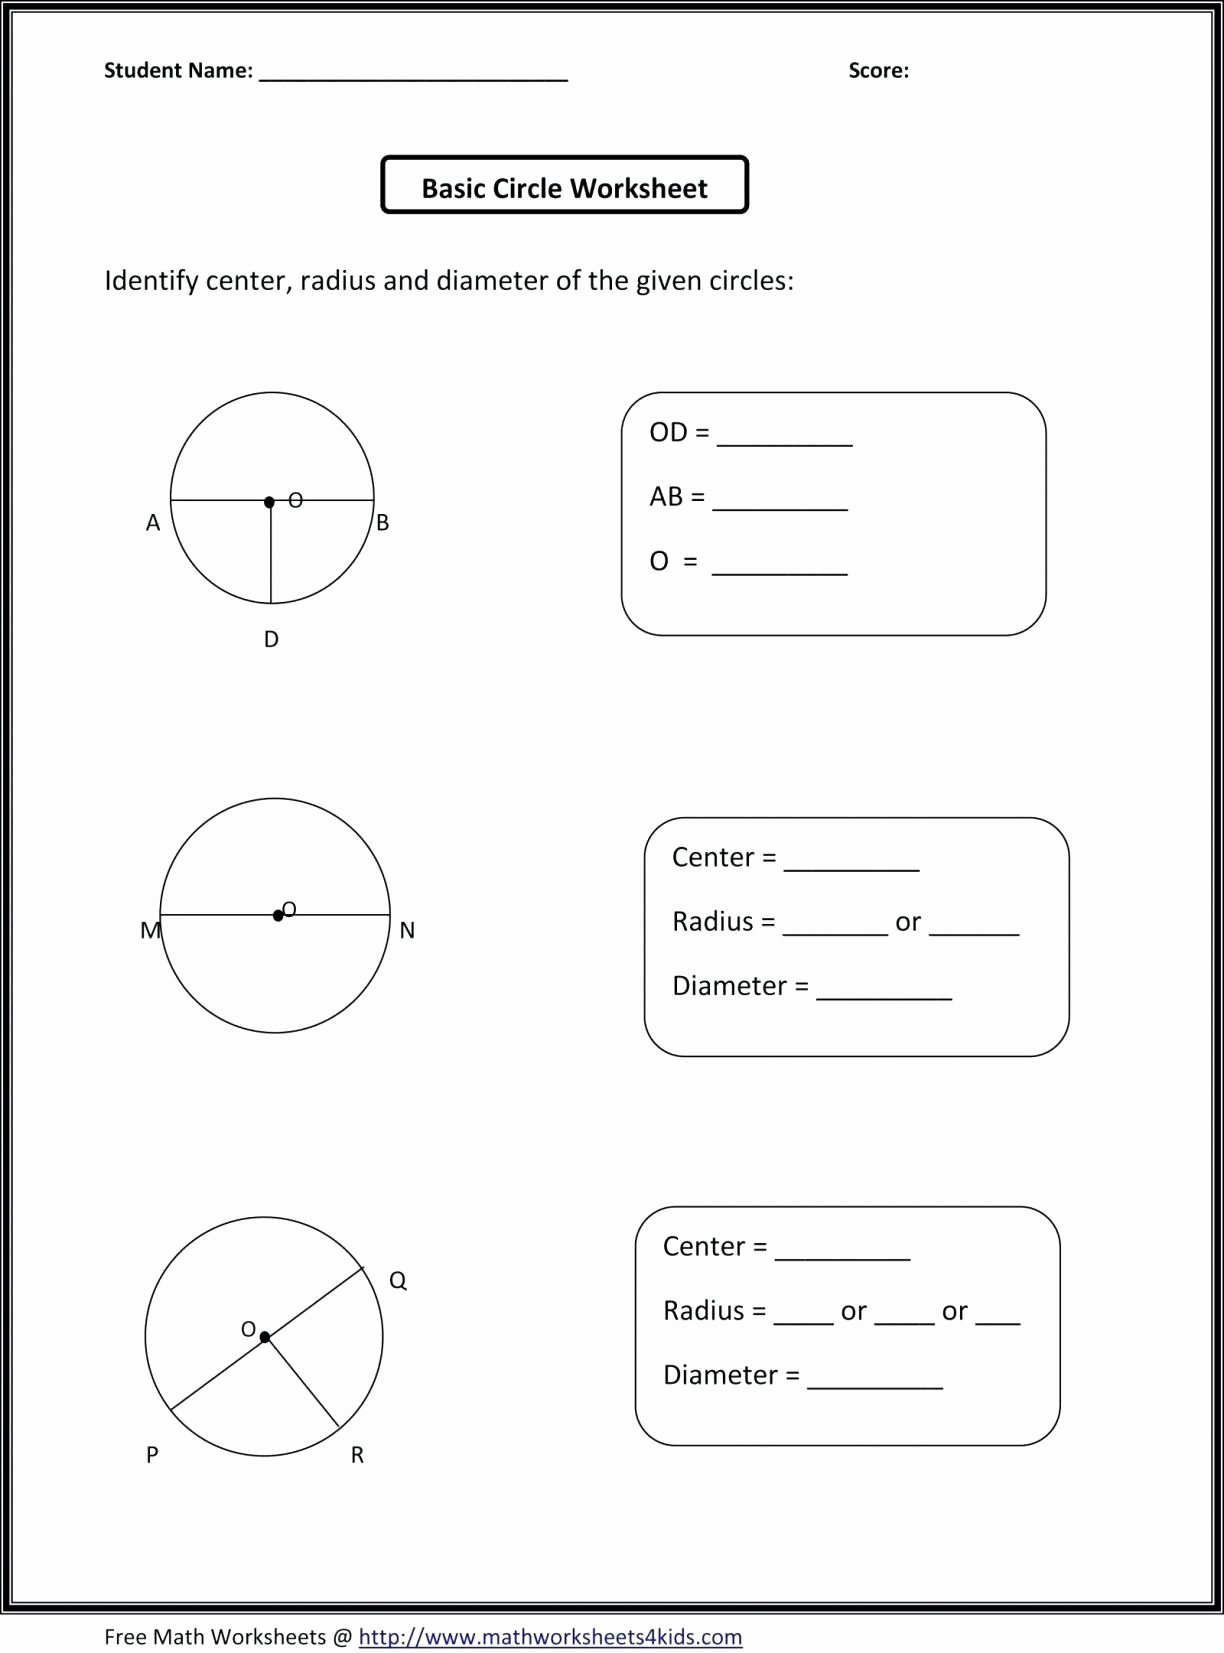 Cnn Student News Worksheet Inspirational Cnn Student News Worksheet